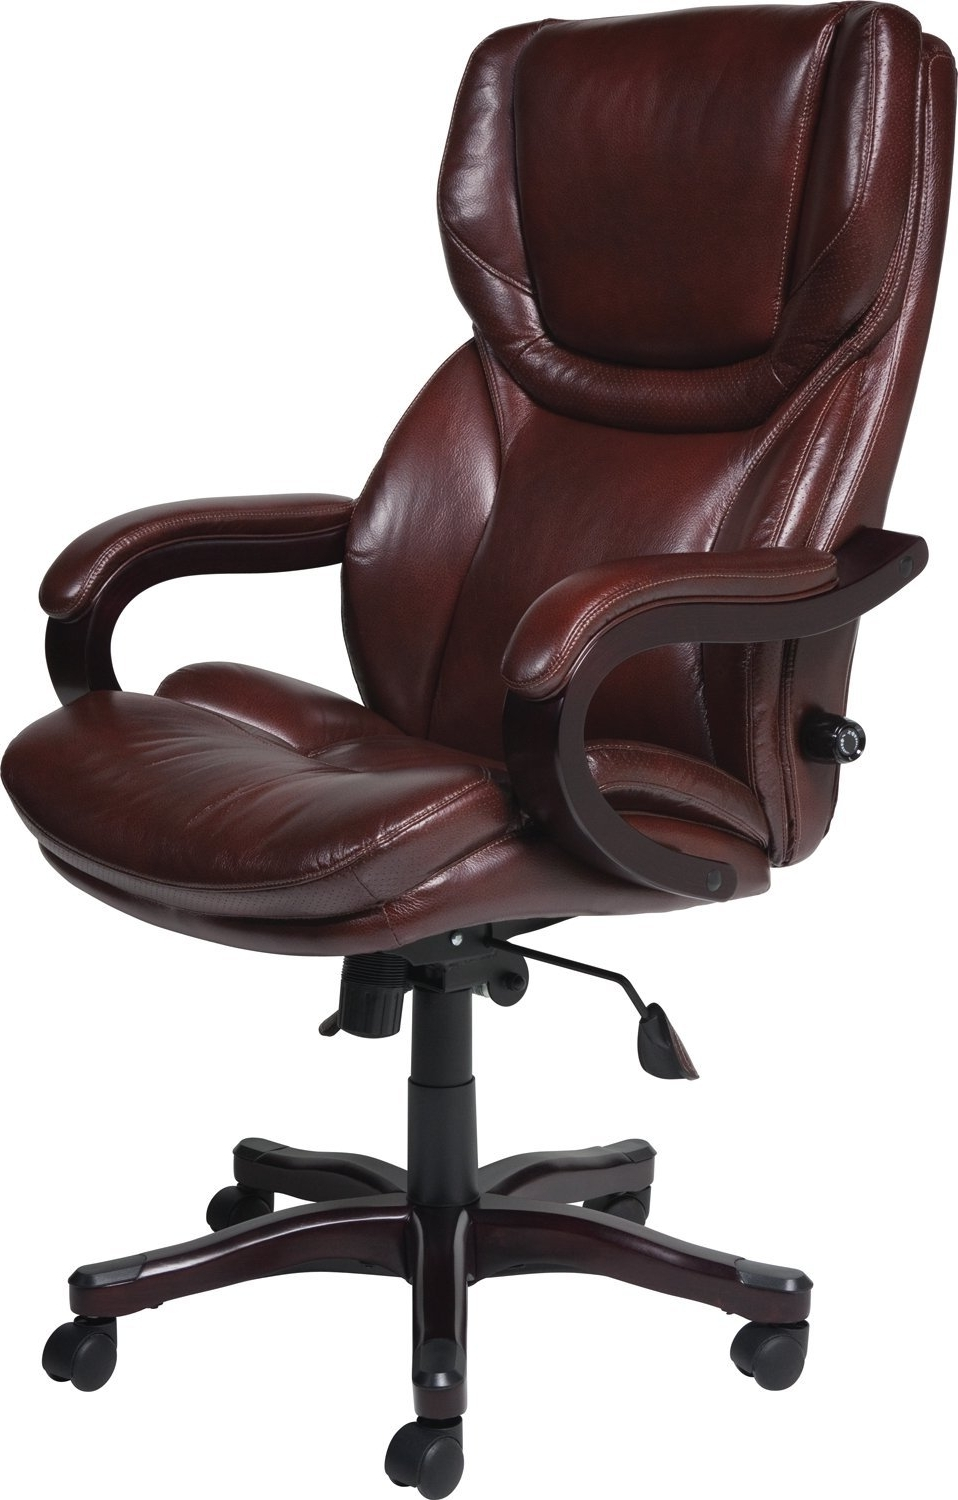 Best Computer Chairs For Bad Backs Inside Newest Heavy Duty Executive Office Chairs (View 15 of 20)